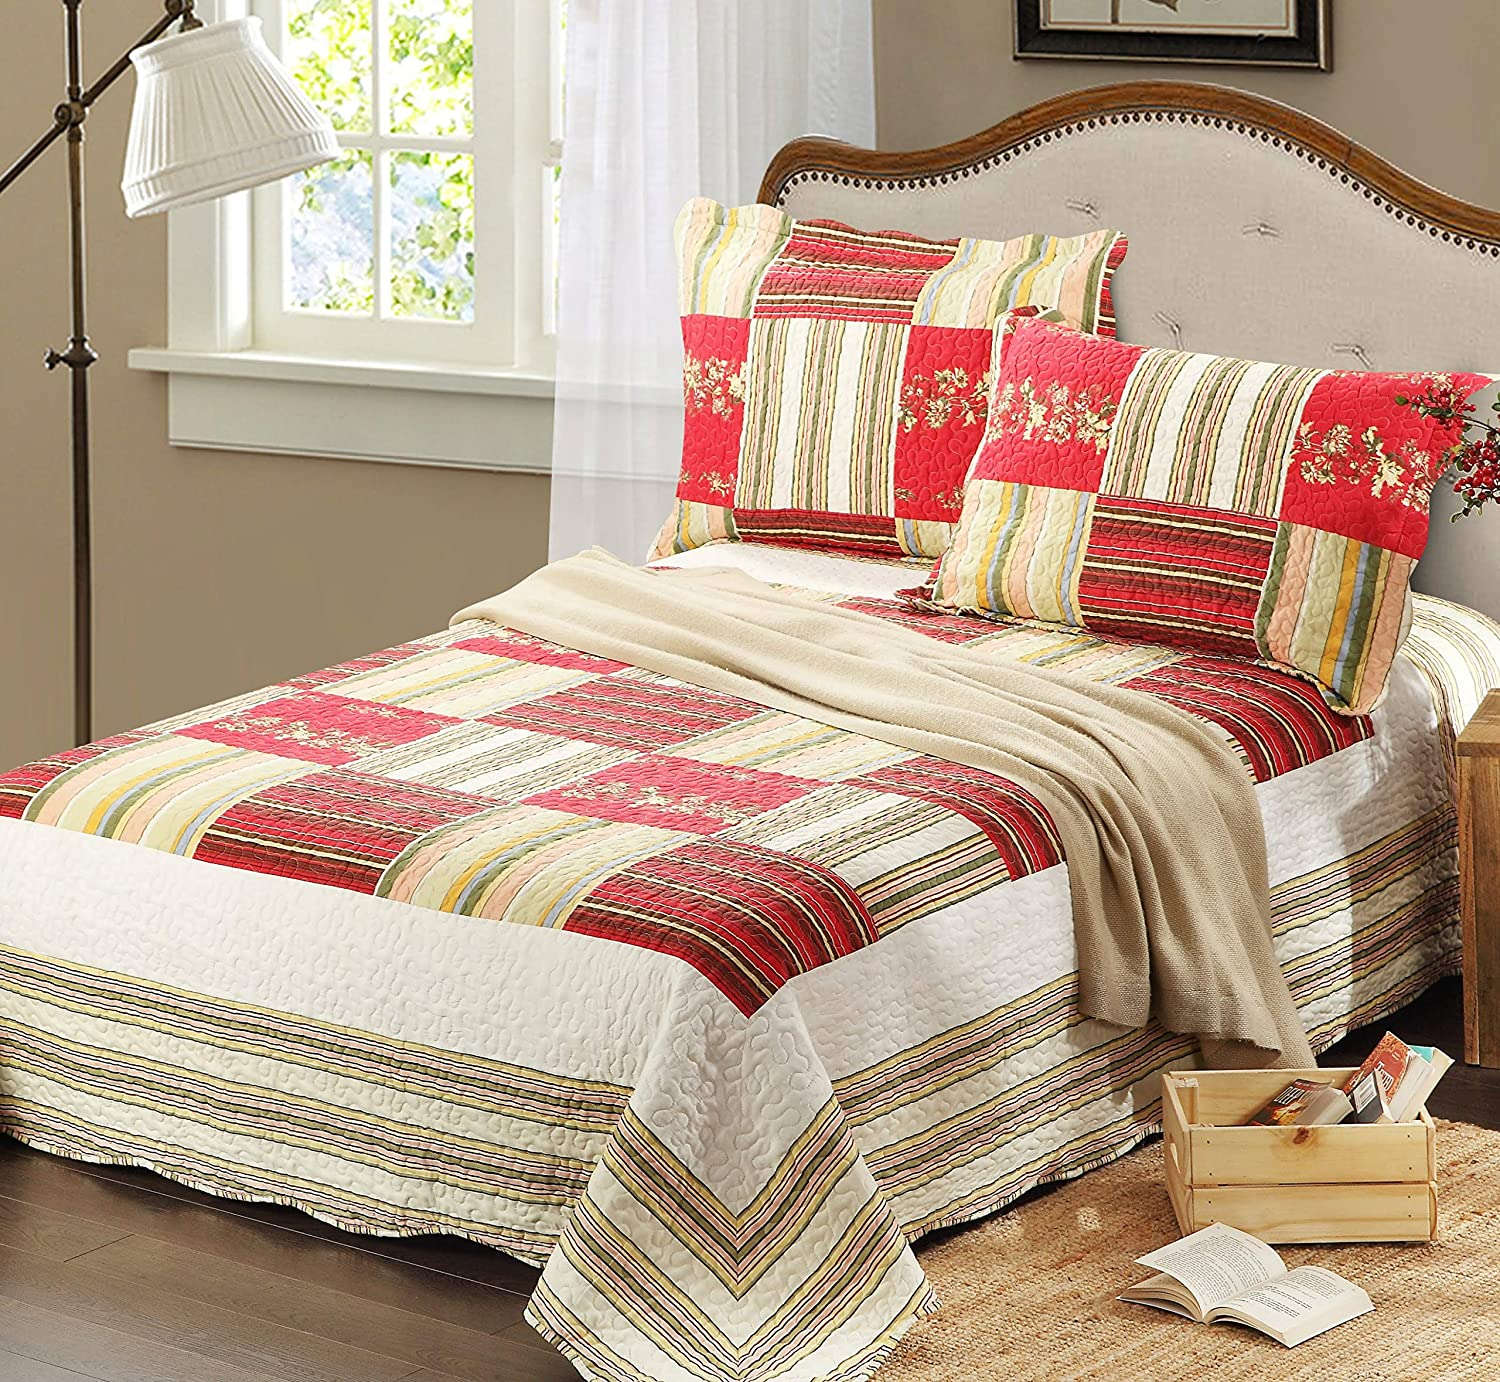 Tache Home Fashion SD8039-Cal King 3 Pc Red Checkmate Lightweight colorful Summer Spring Reversible Print Patchwork Bedspread Quilt Set, Cal